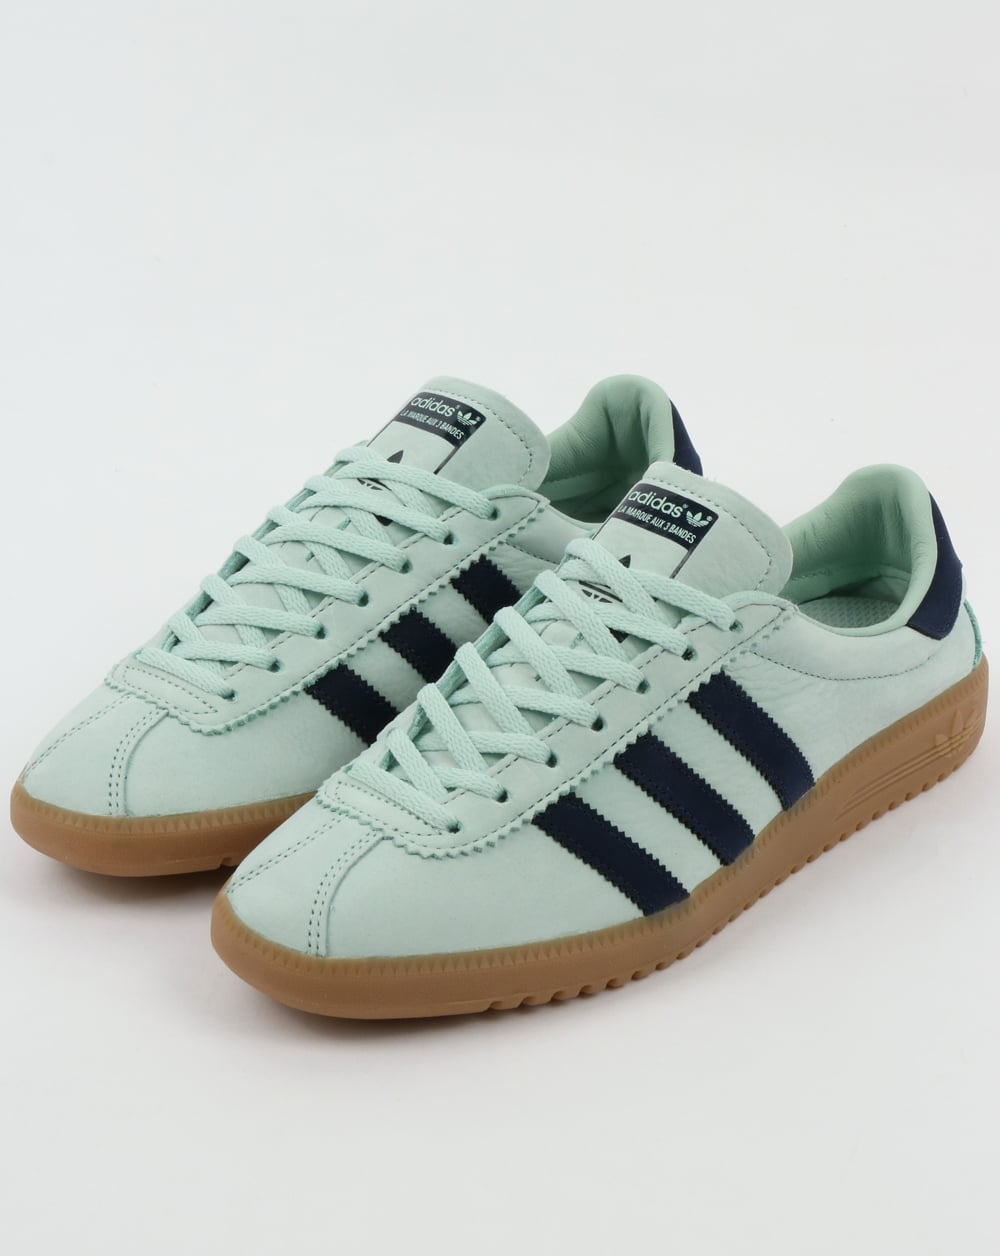 adidas originals archive bermuda